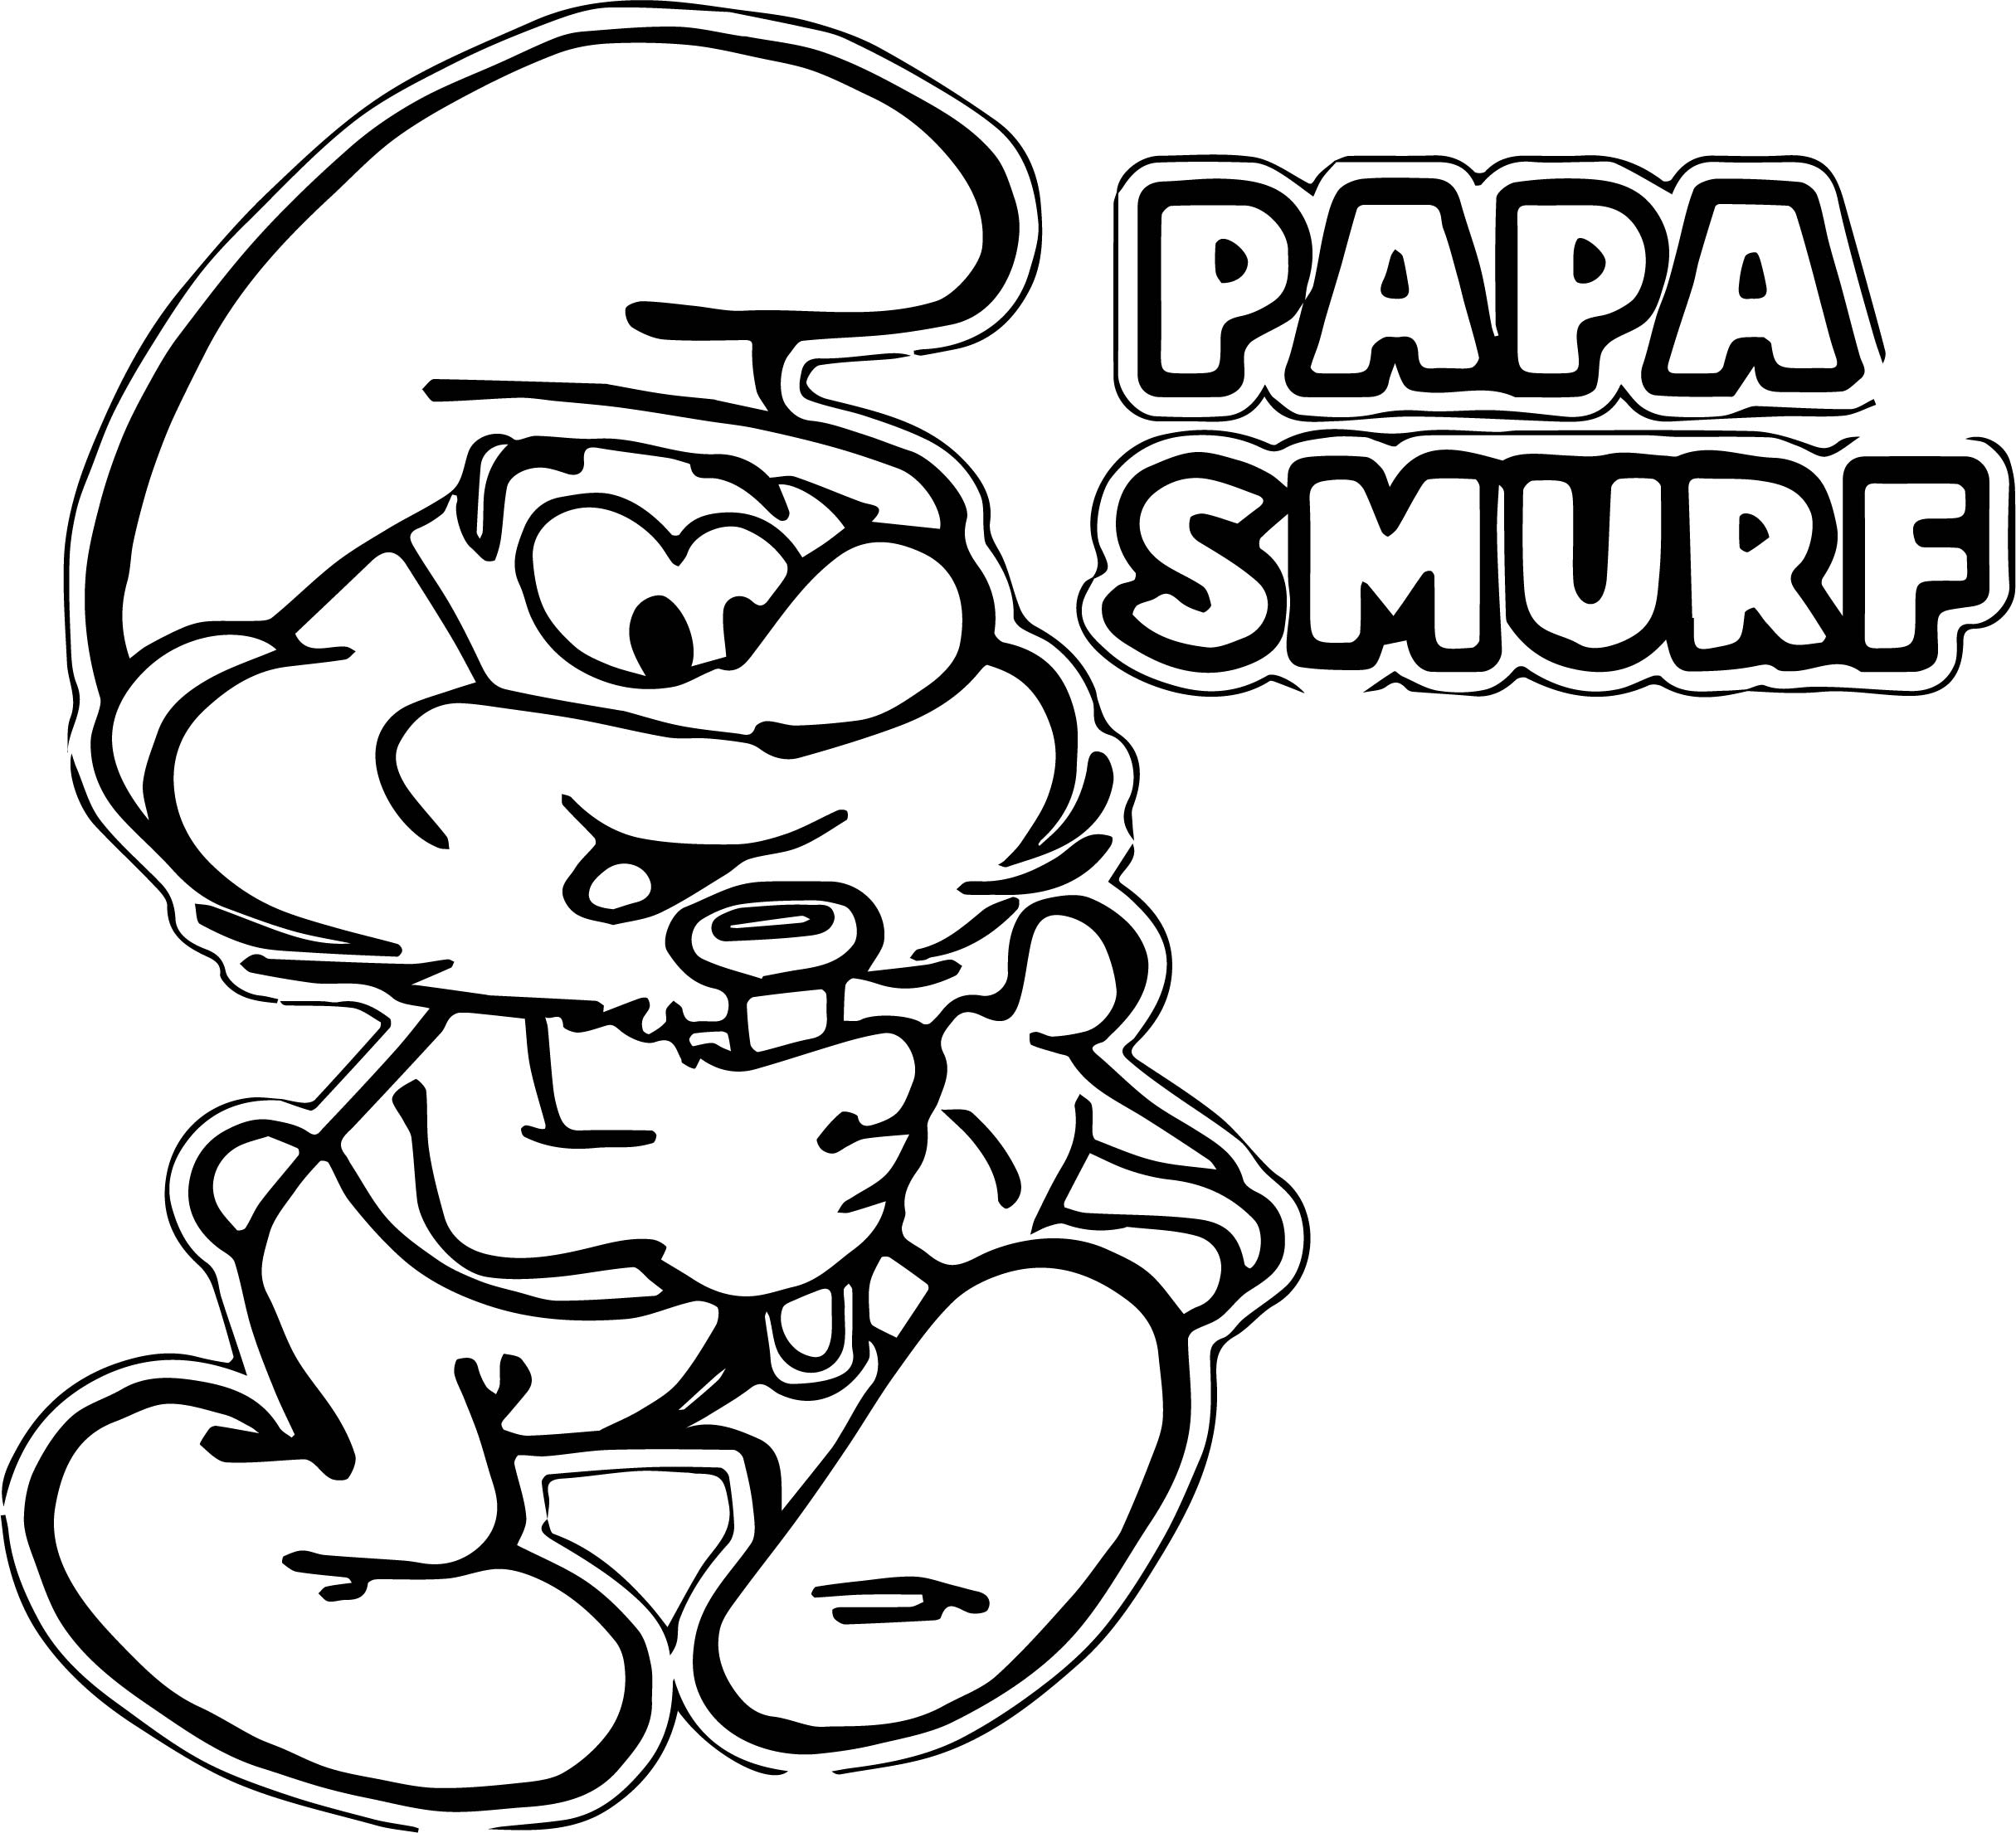 papa smurf coloring pages papa smurf coloring pages download and print for free smurf papa coloring pages